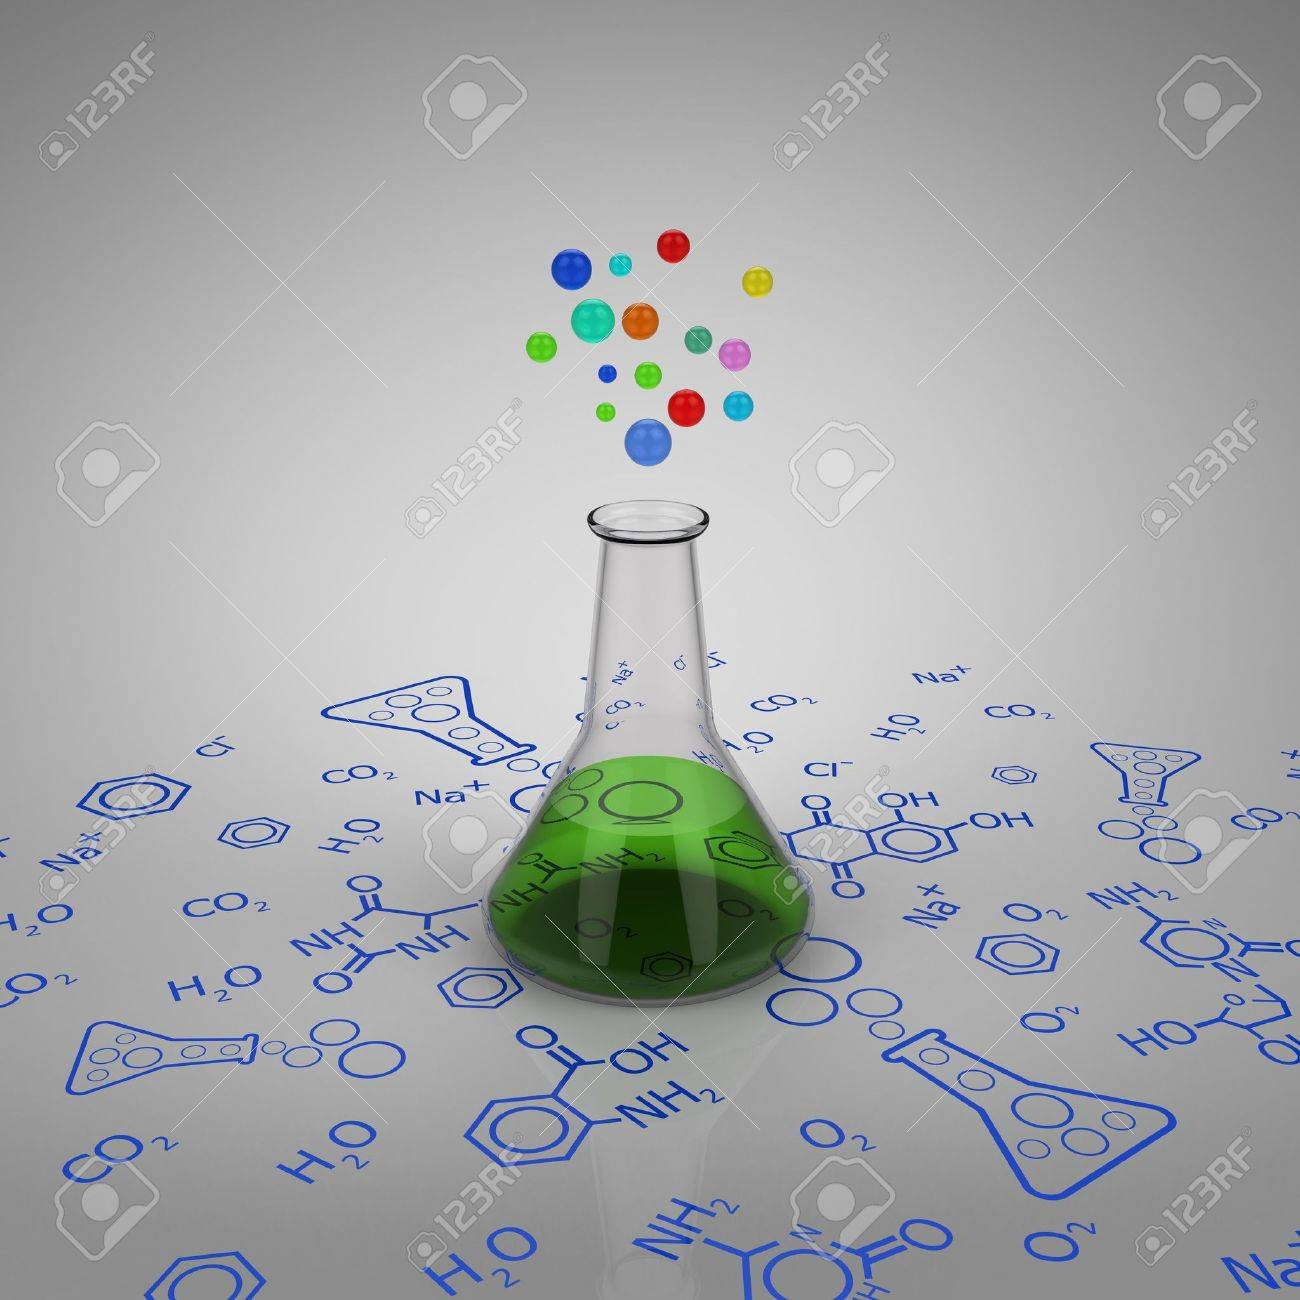 3D model of glass test tube with green liquid and bubbles on